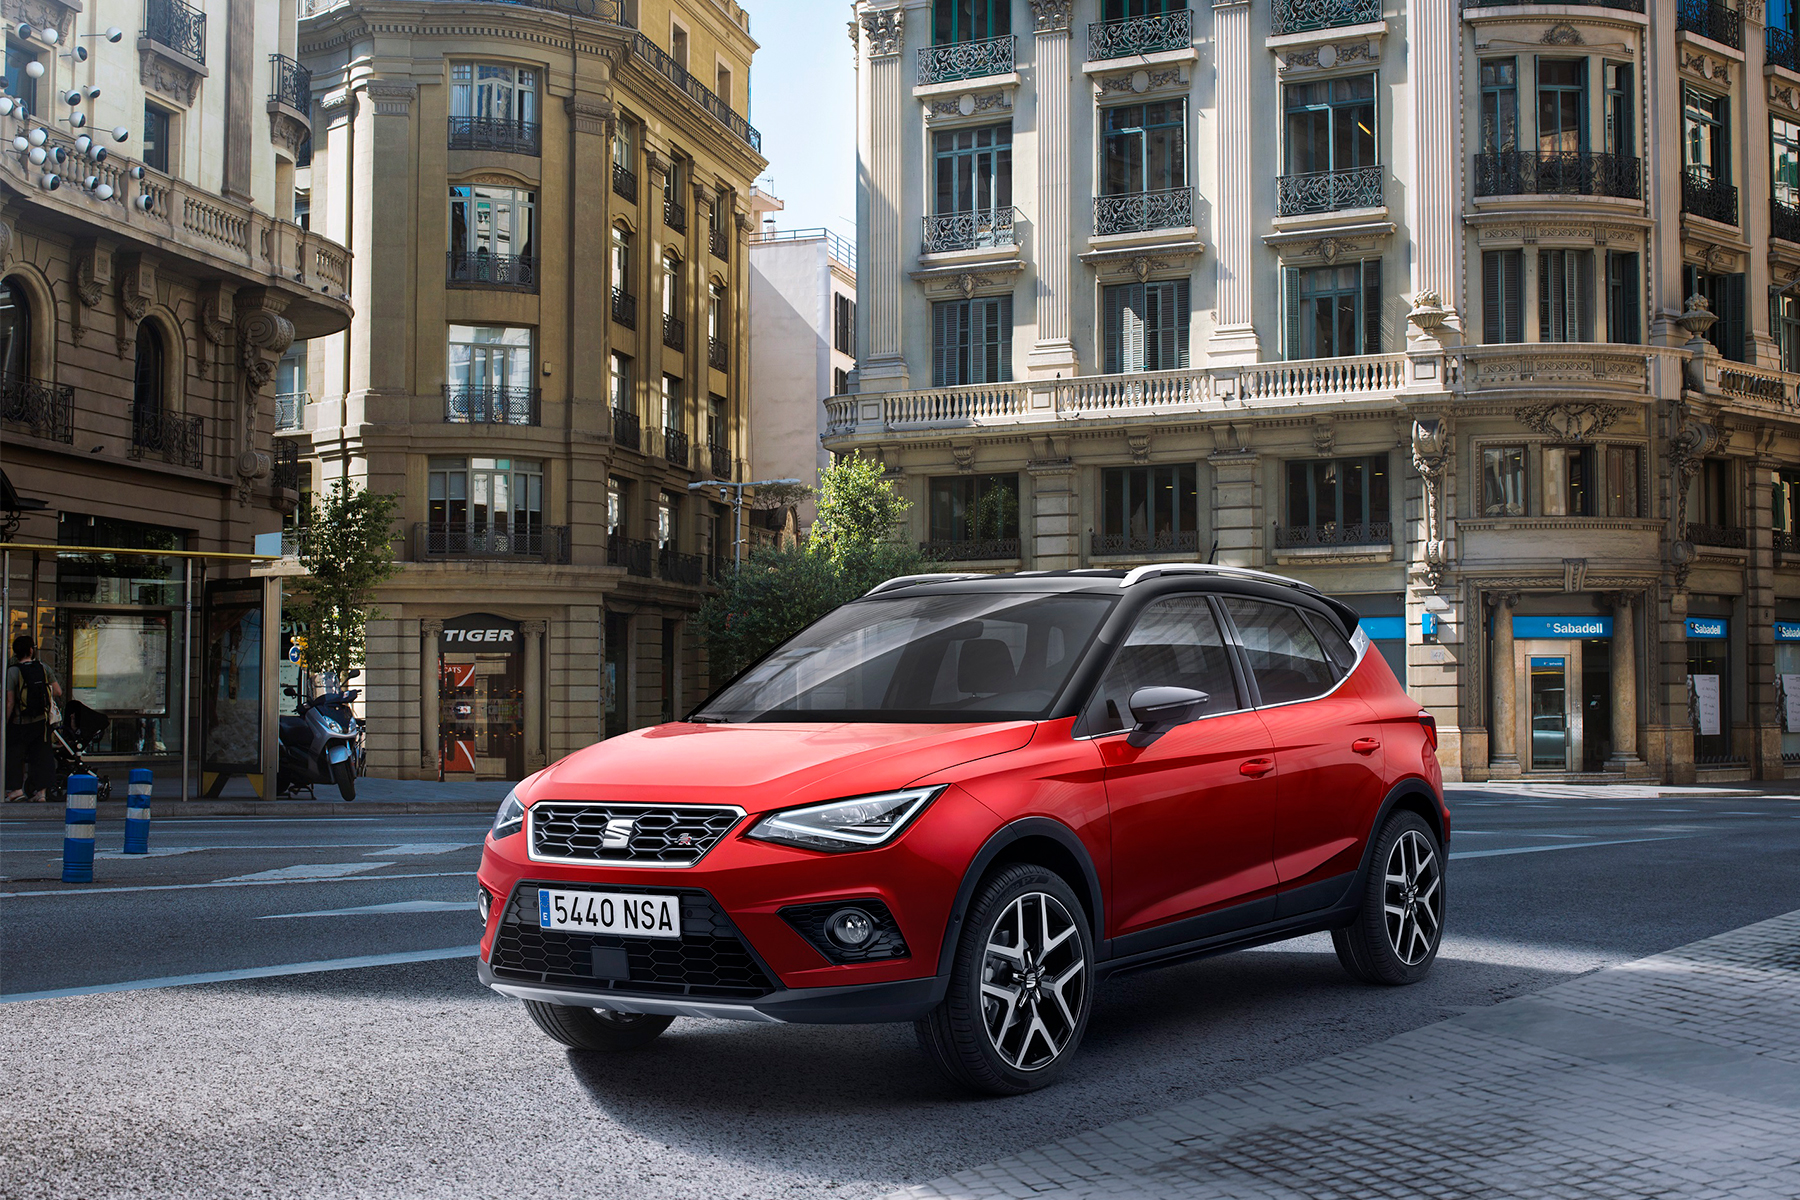 Seat Arona Fr 1 0 Tsi 115 Dsg Wintonsworld Review 2018